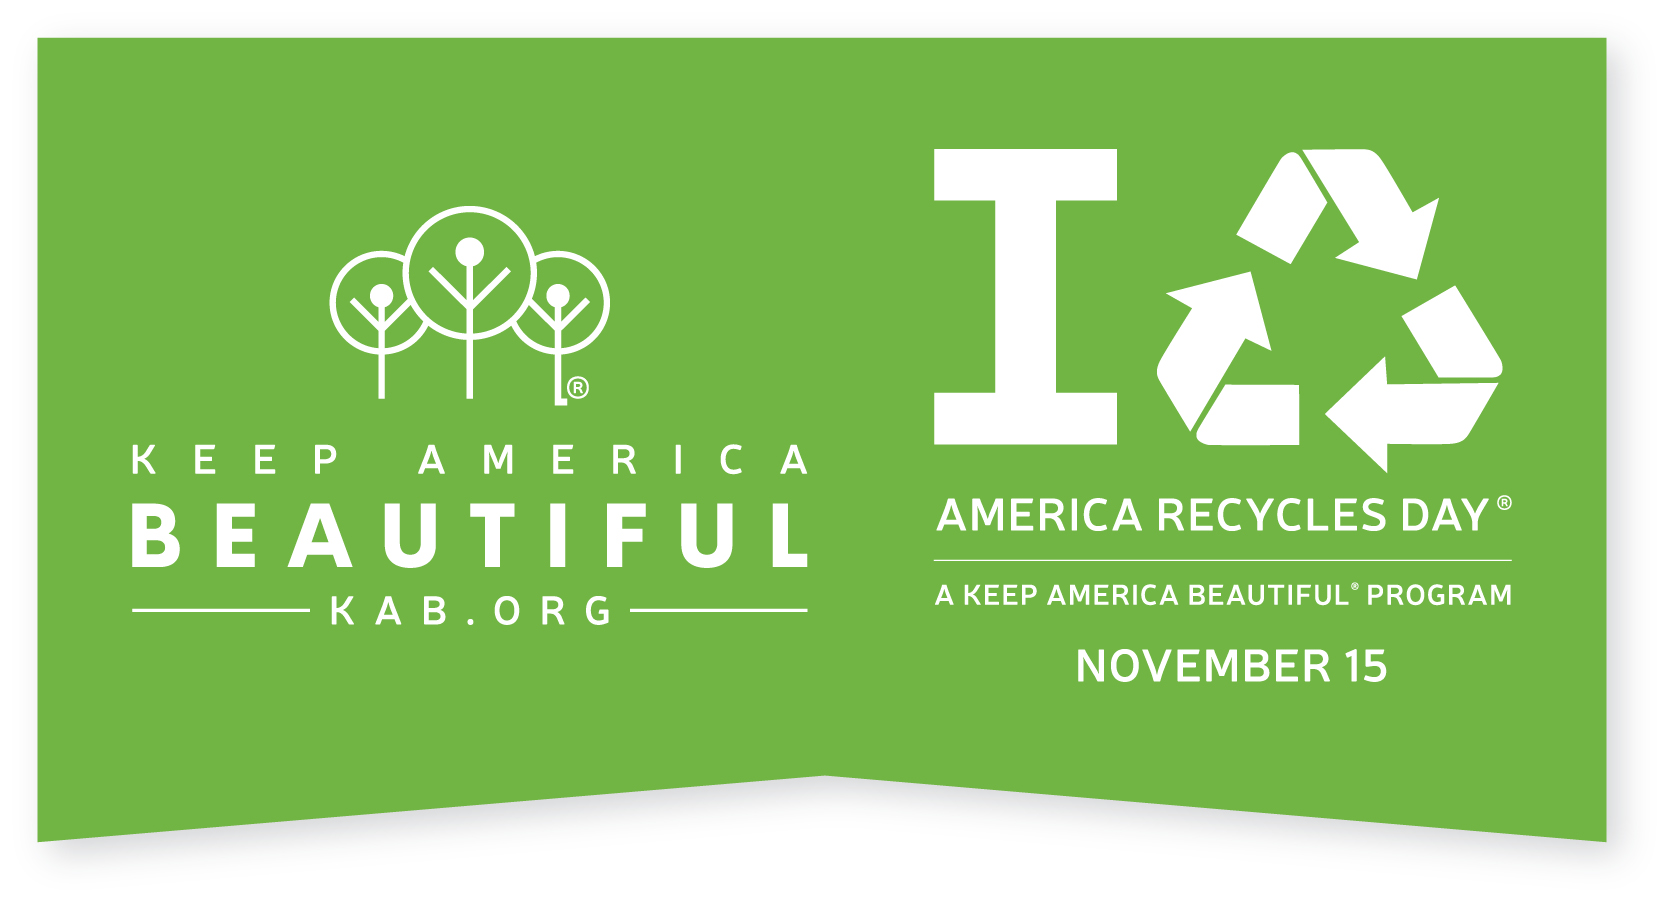 Keep America BeautifulⓇ celebrates America Recycles DayⓇ